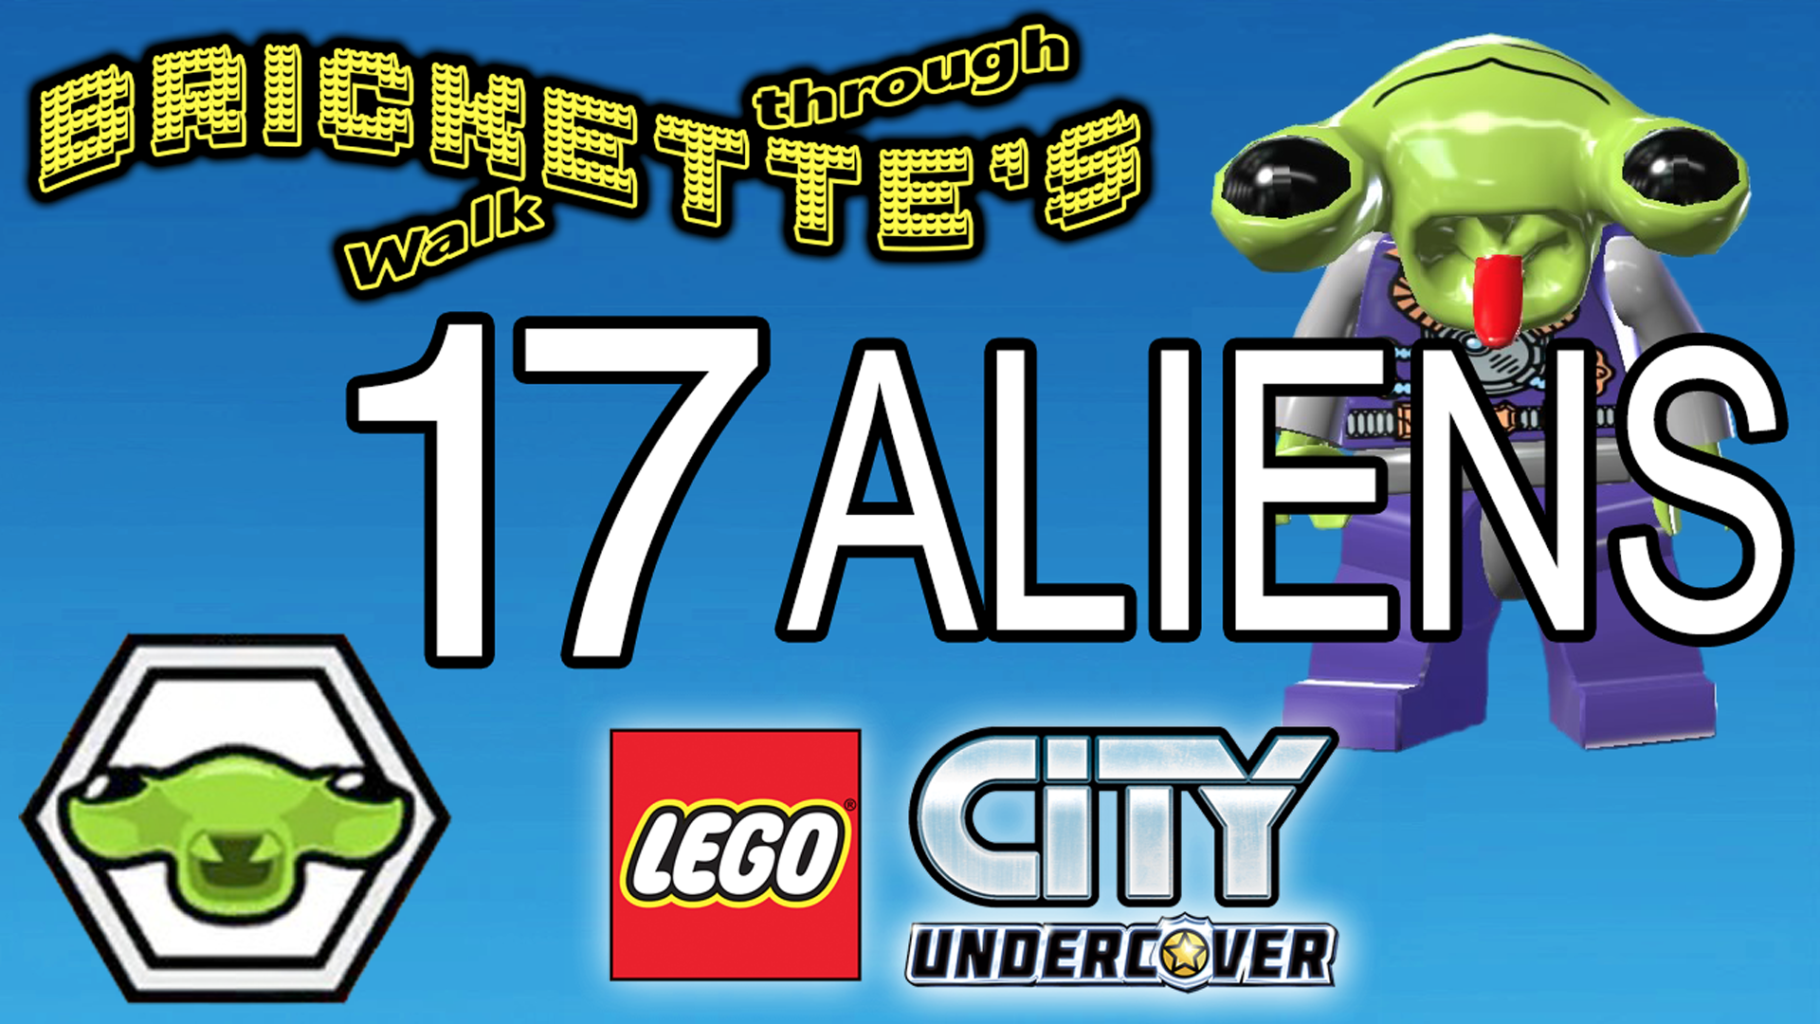 Getting All 17 ALIENS in LEGO City: Undercover